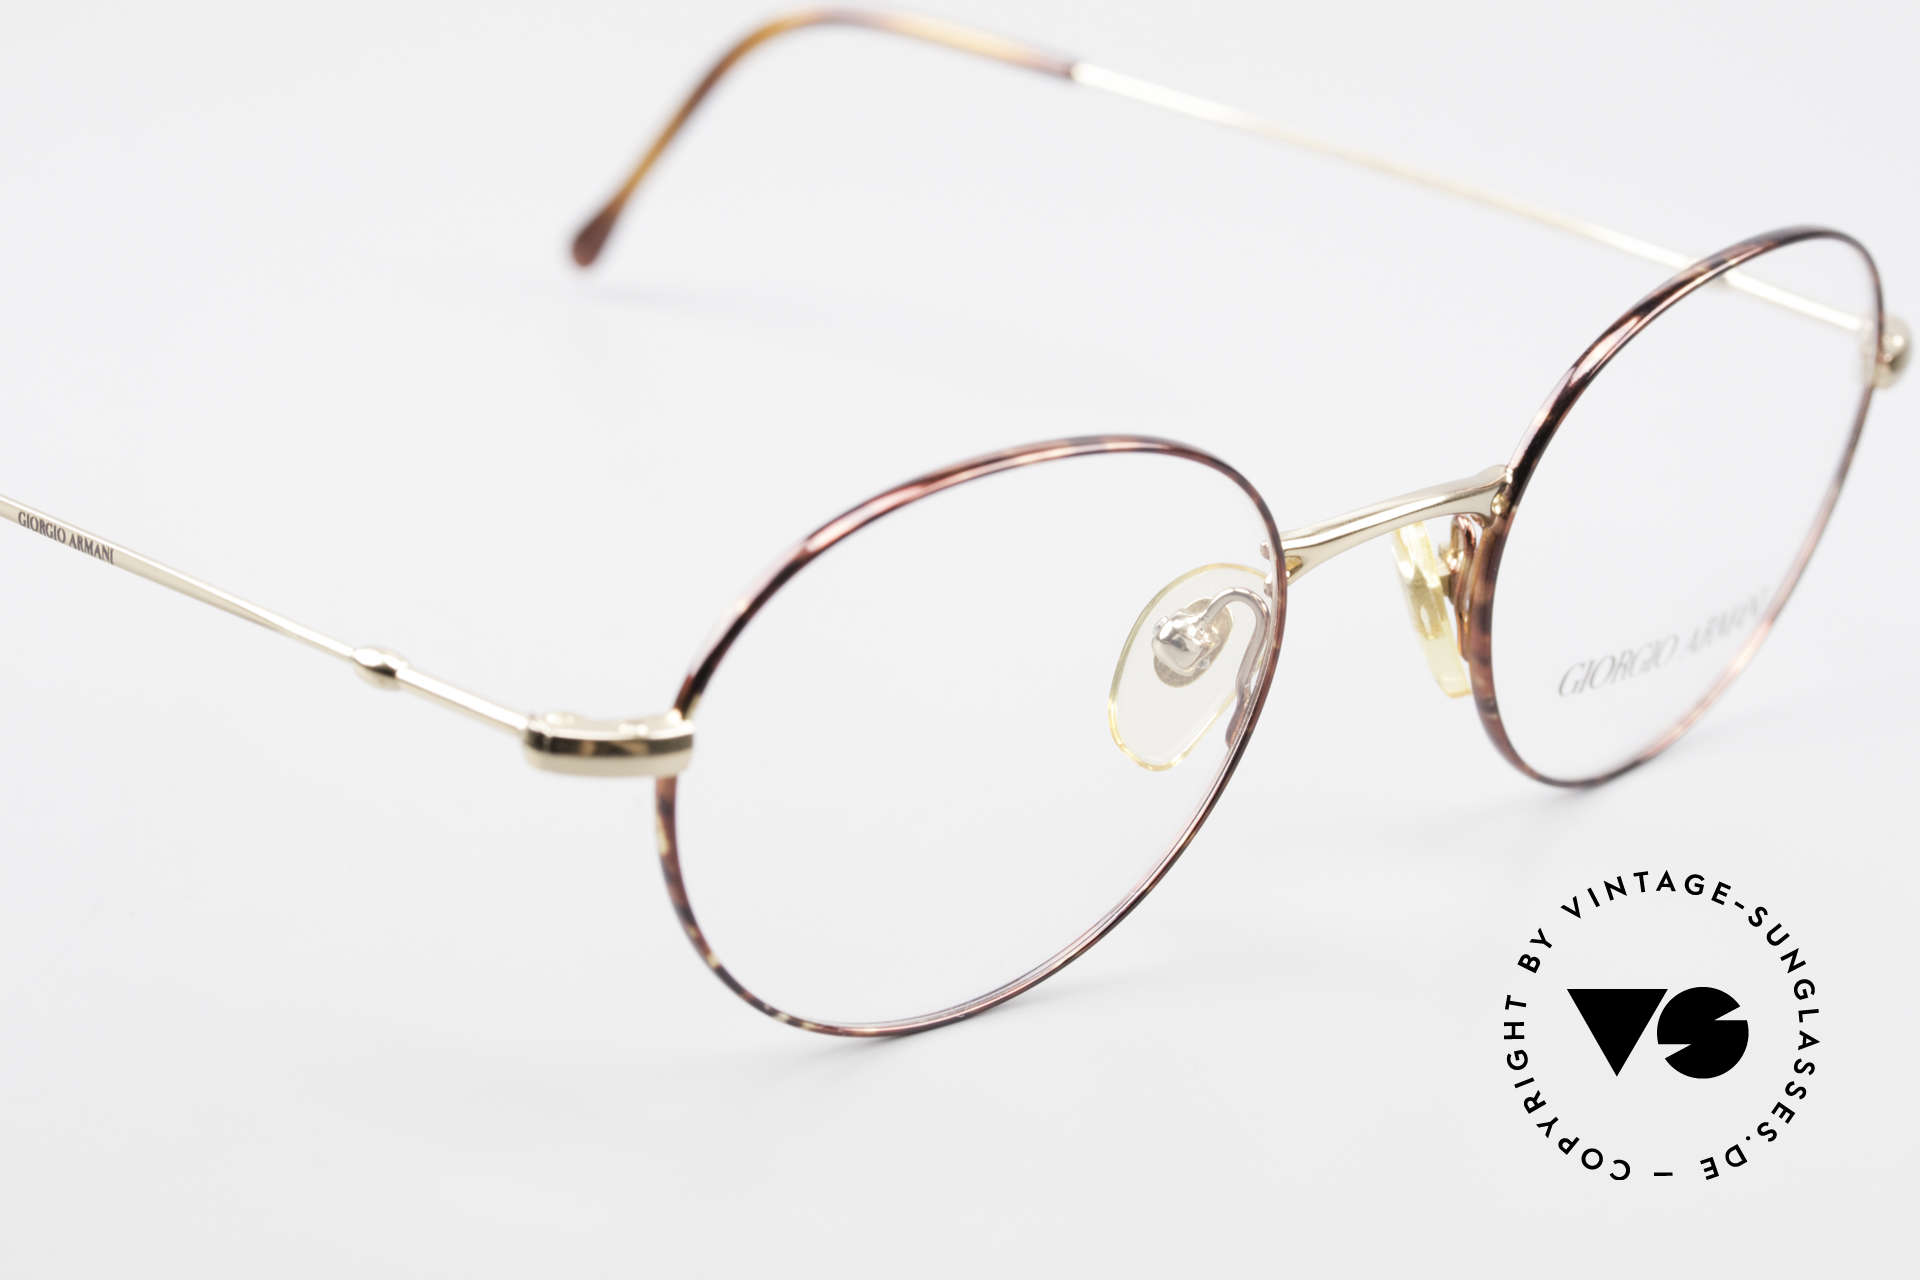 Giorgio Armani 252 Oval Vintage Eyeglasses 90's, NO RETRO EYEWEAR, but a 25 years old Original, Made for Men and Women